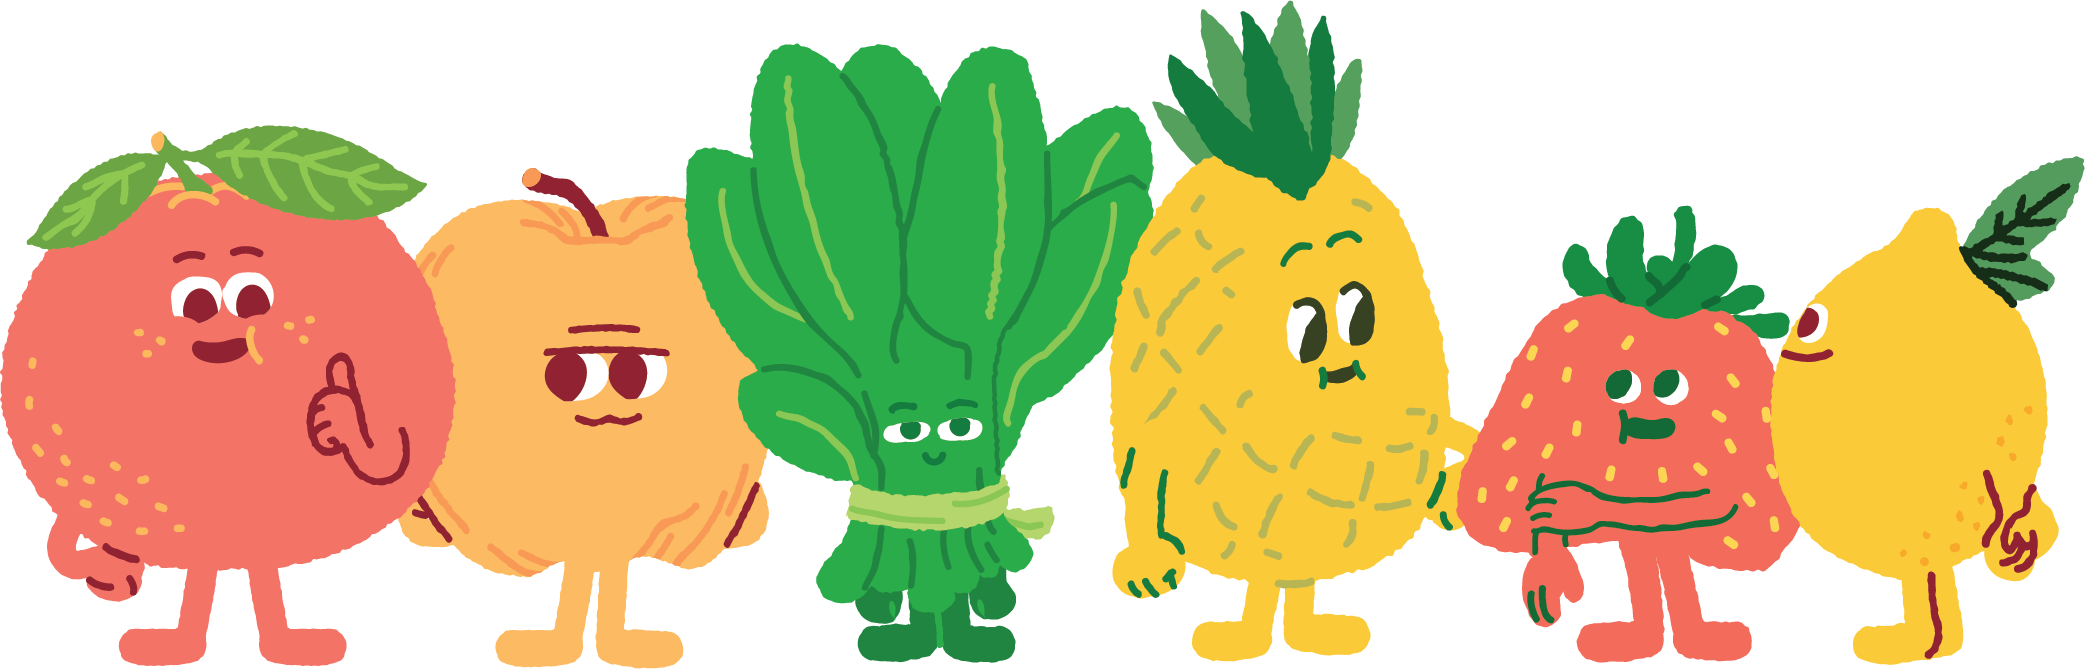 Characters group.png